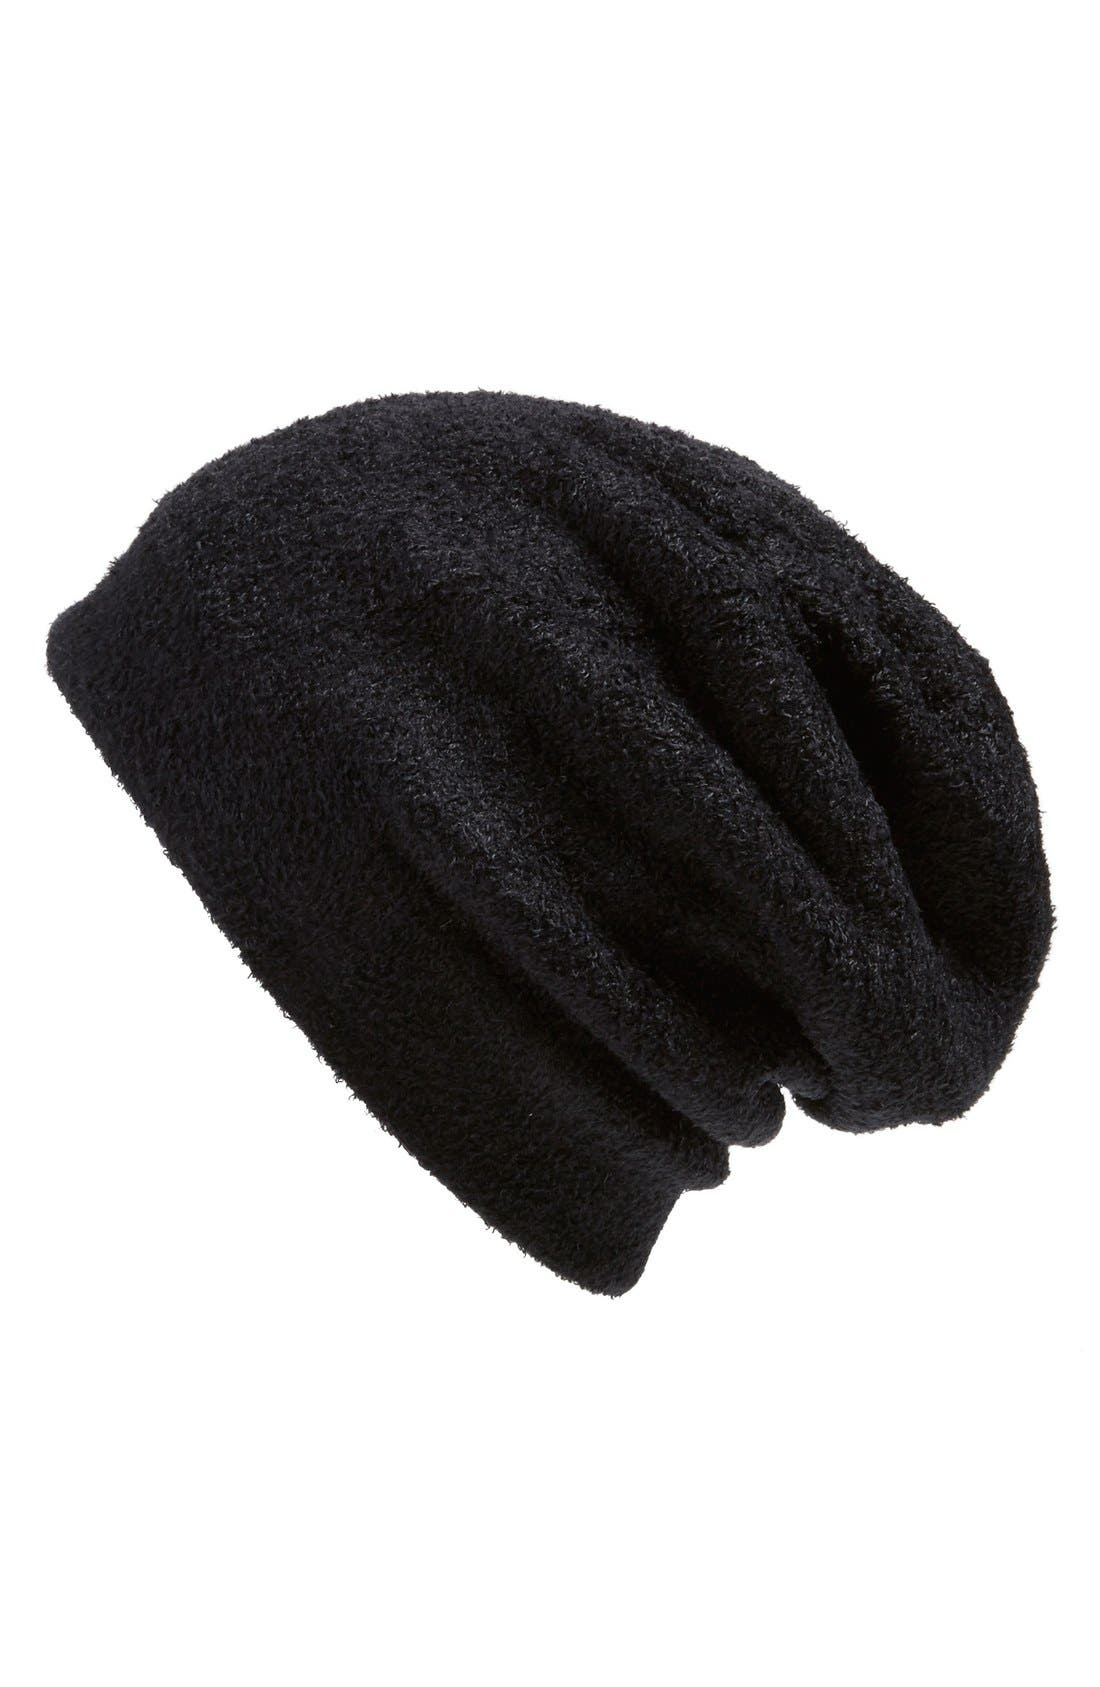 CozyChic Lite<sup>®</sup> Beanie,                         Main,                         color,